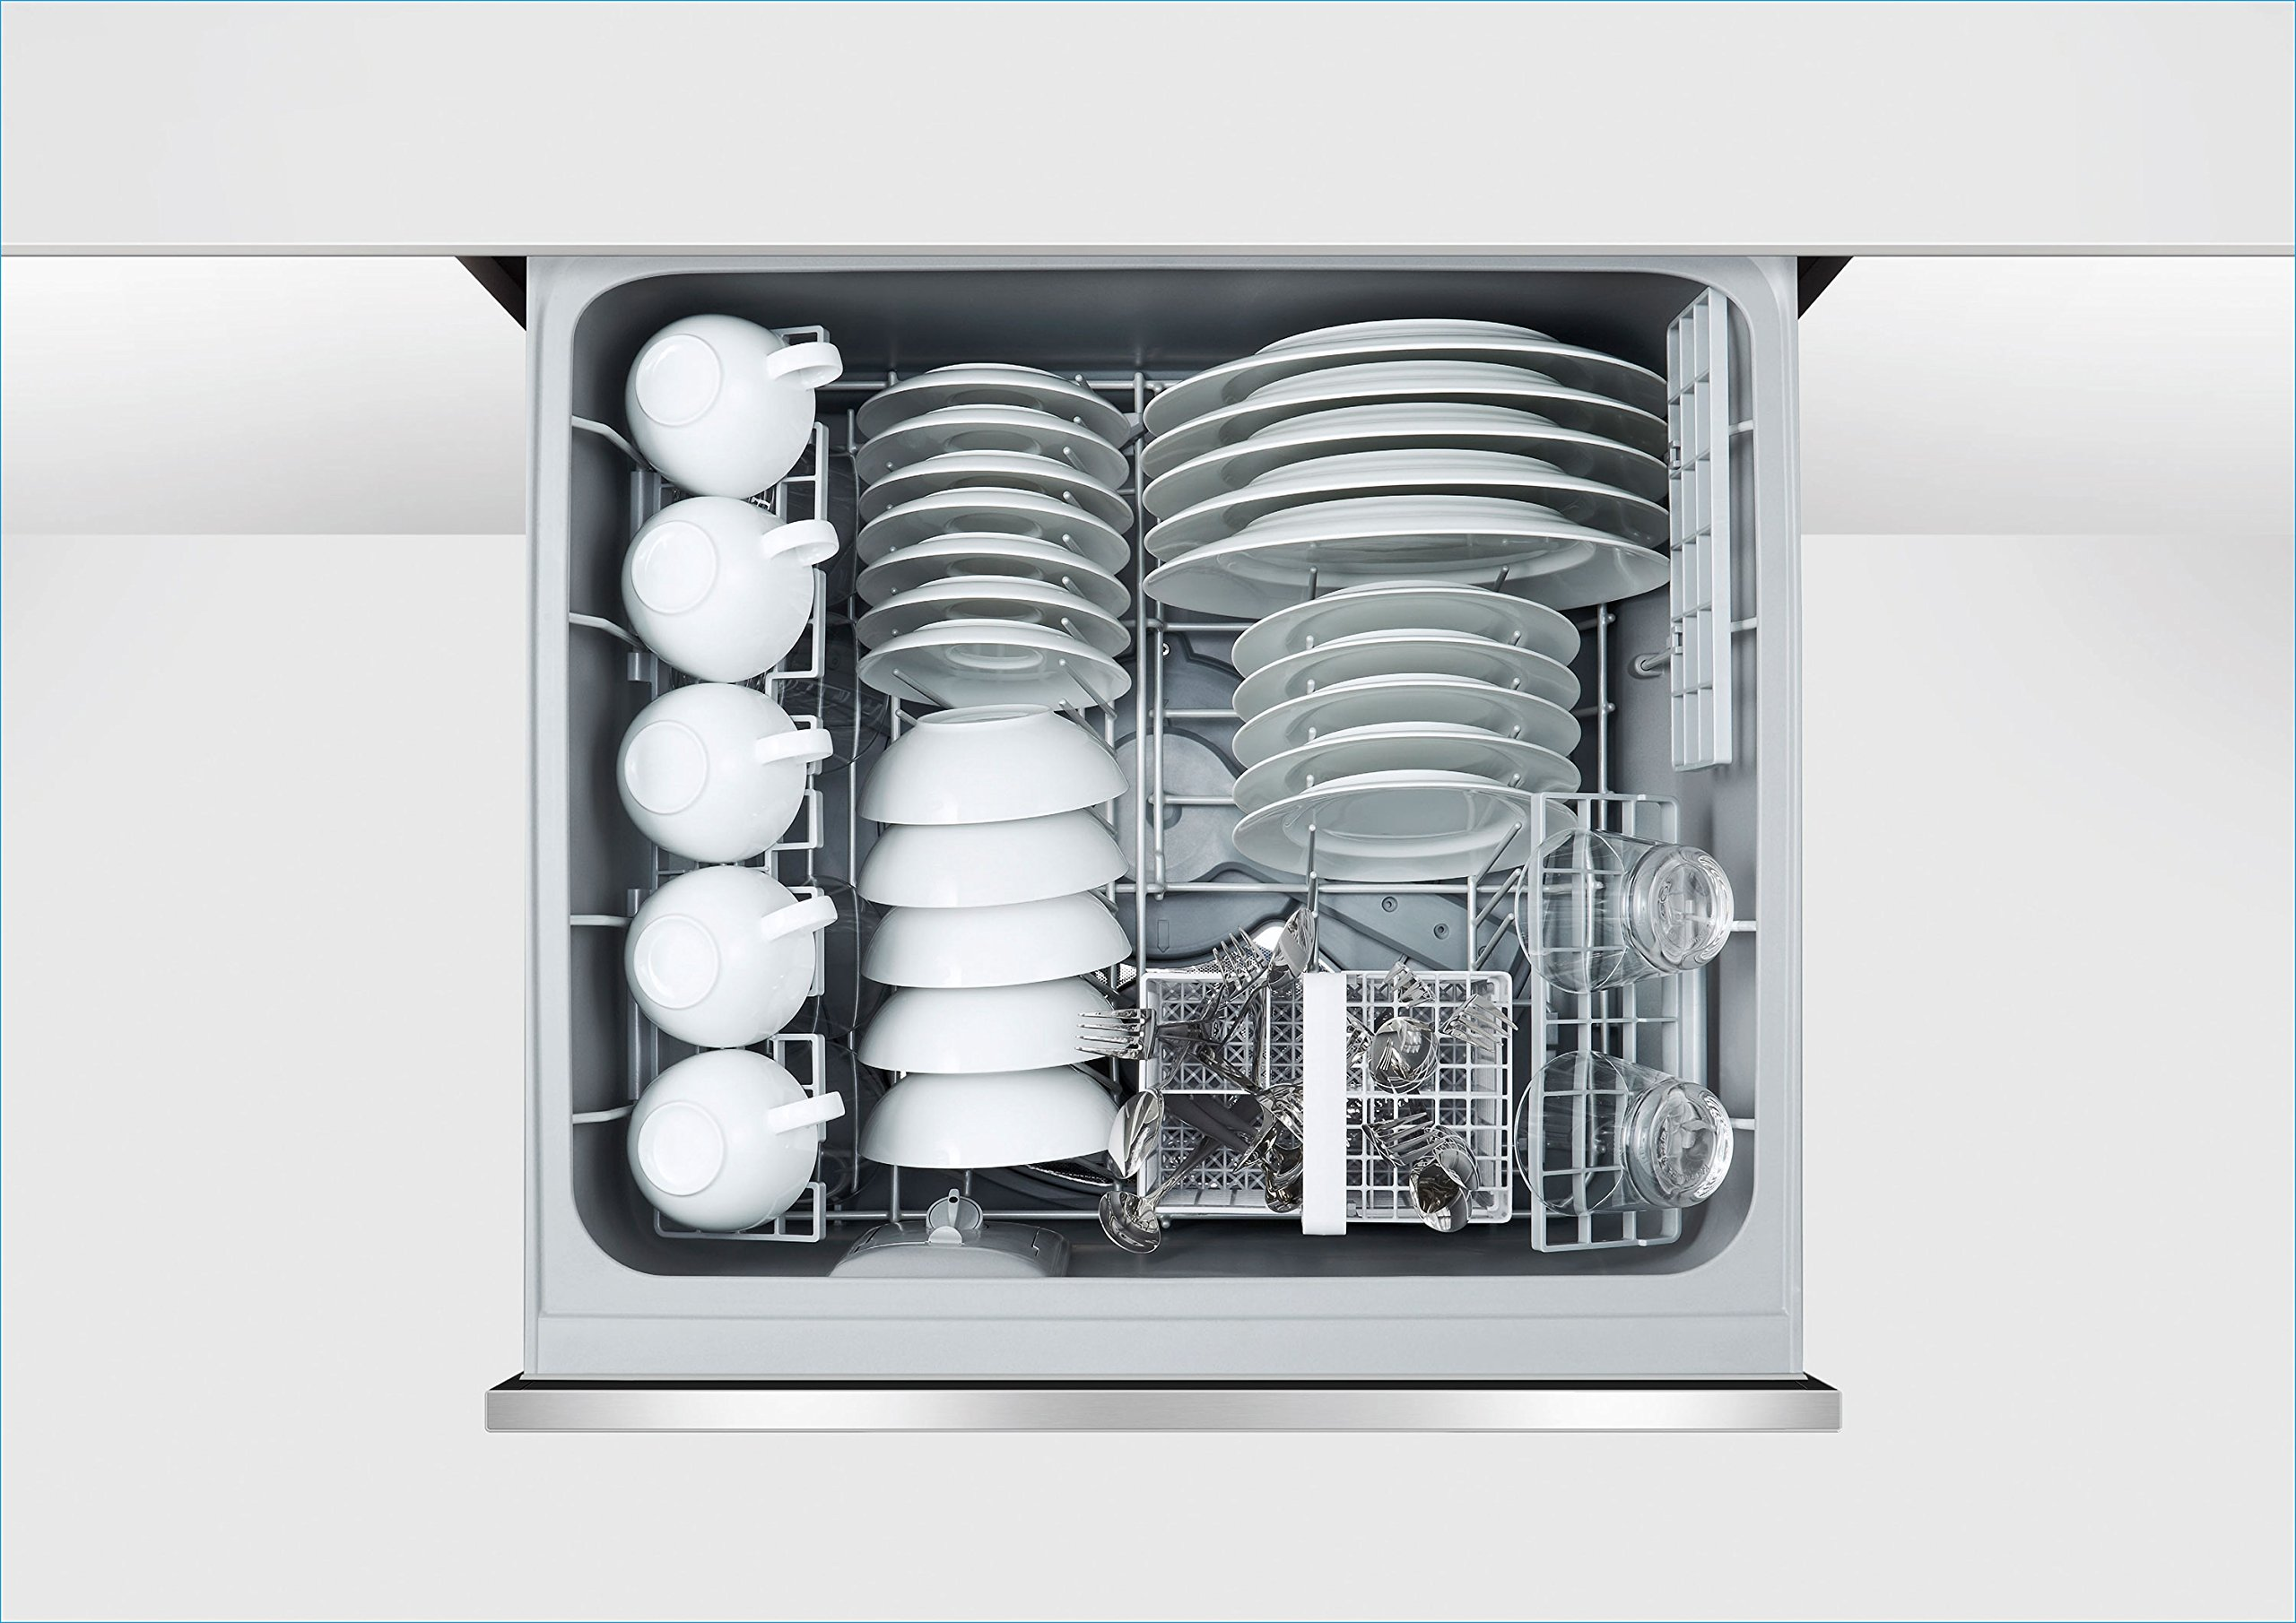 Fisher Paykel DD24DCTX9 24'' Tall Double Drawer DishDrawer Dishwasher with 14 Place Settings 2 Cutlery Baskets Child Lock SmartDrive TM Technology and Recessed Handle in Stainless